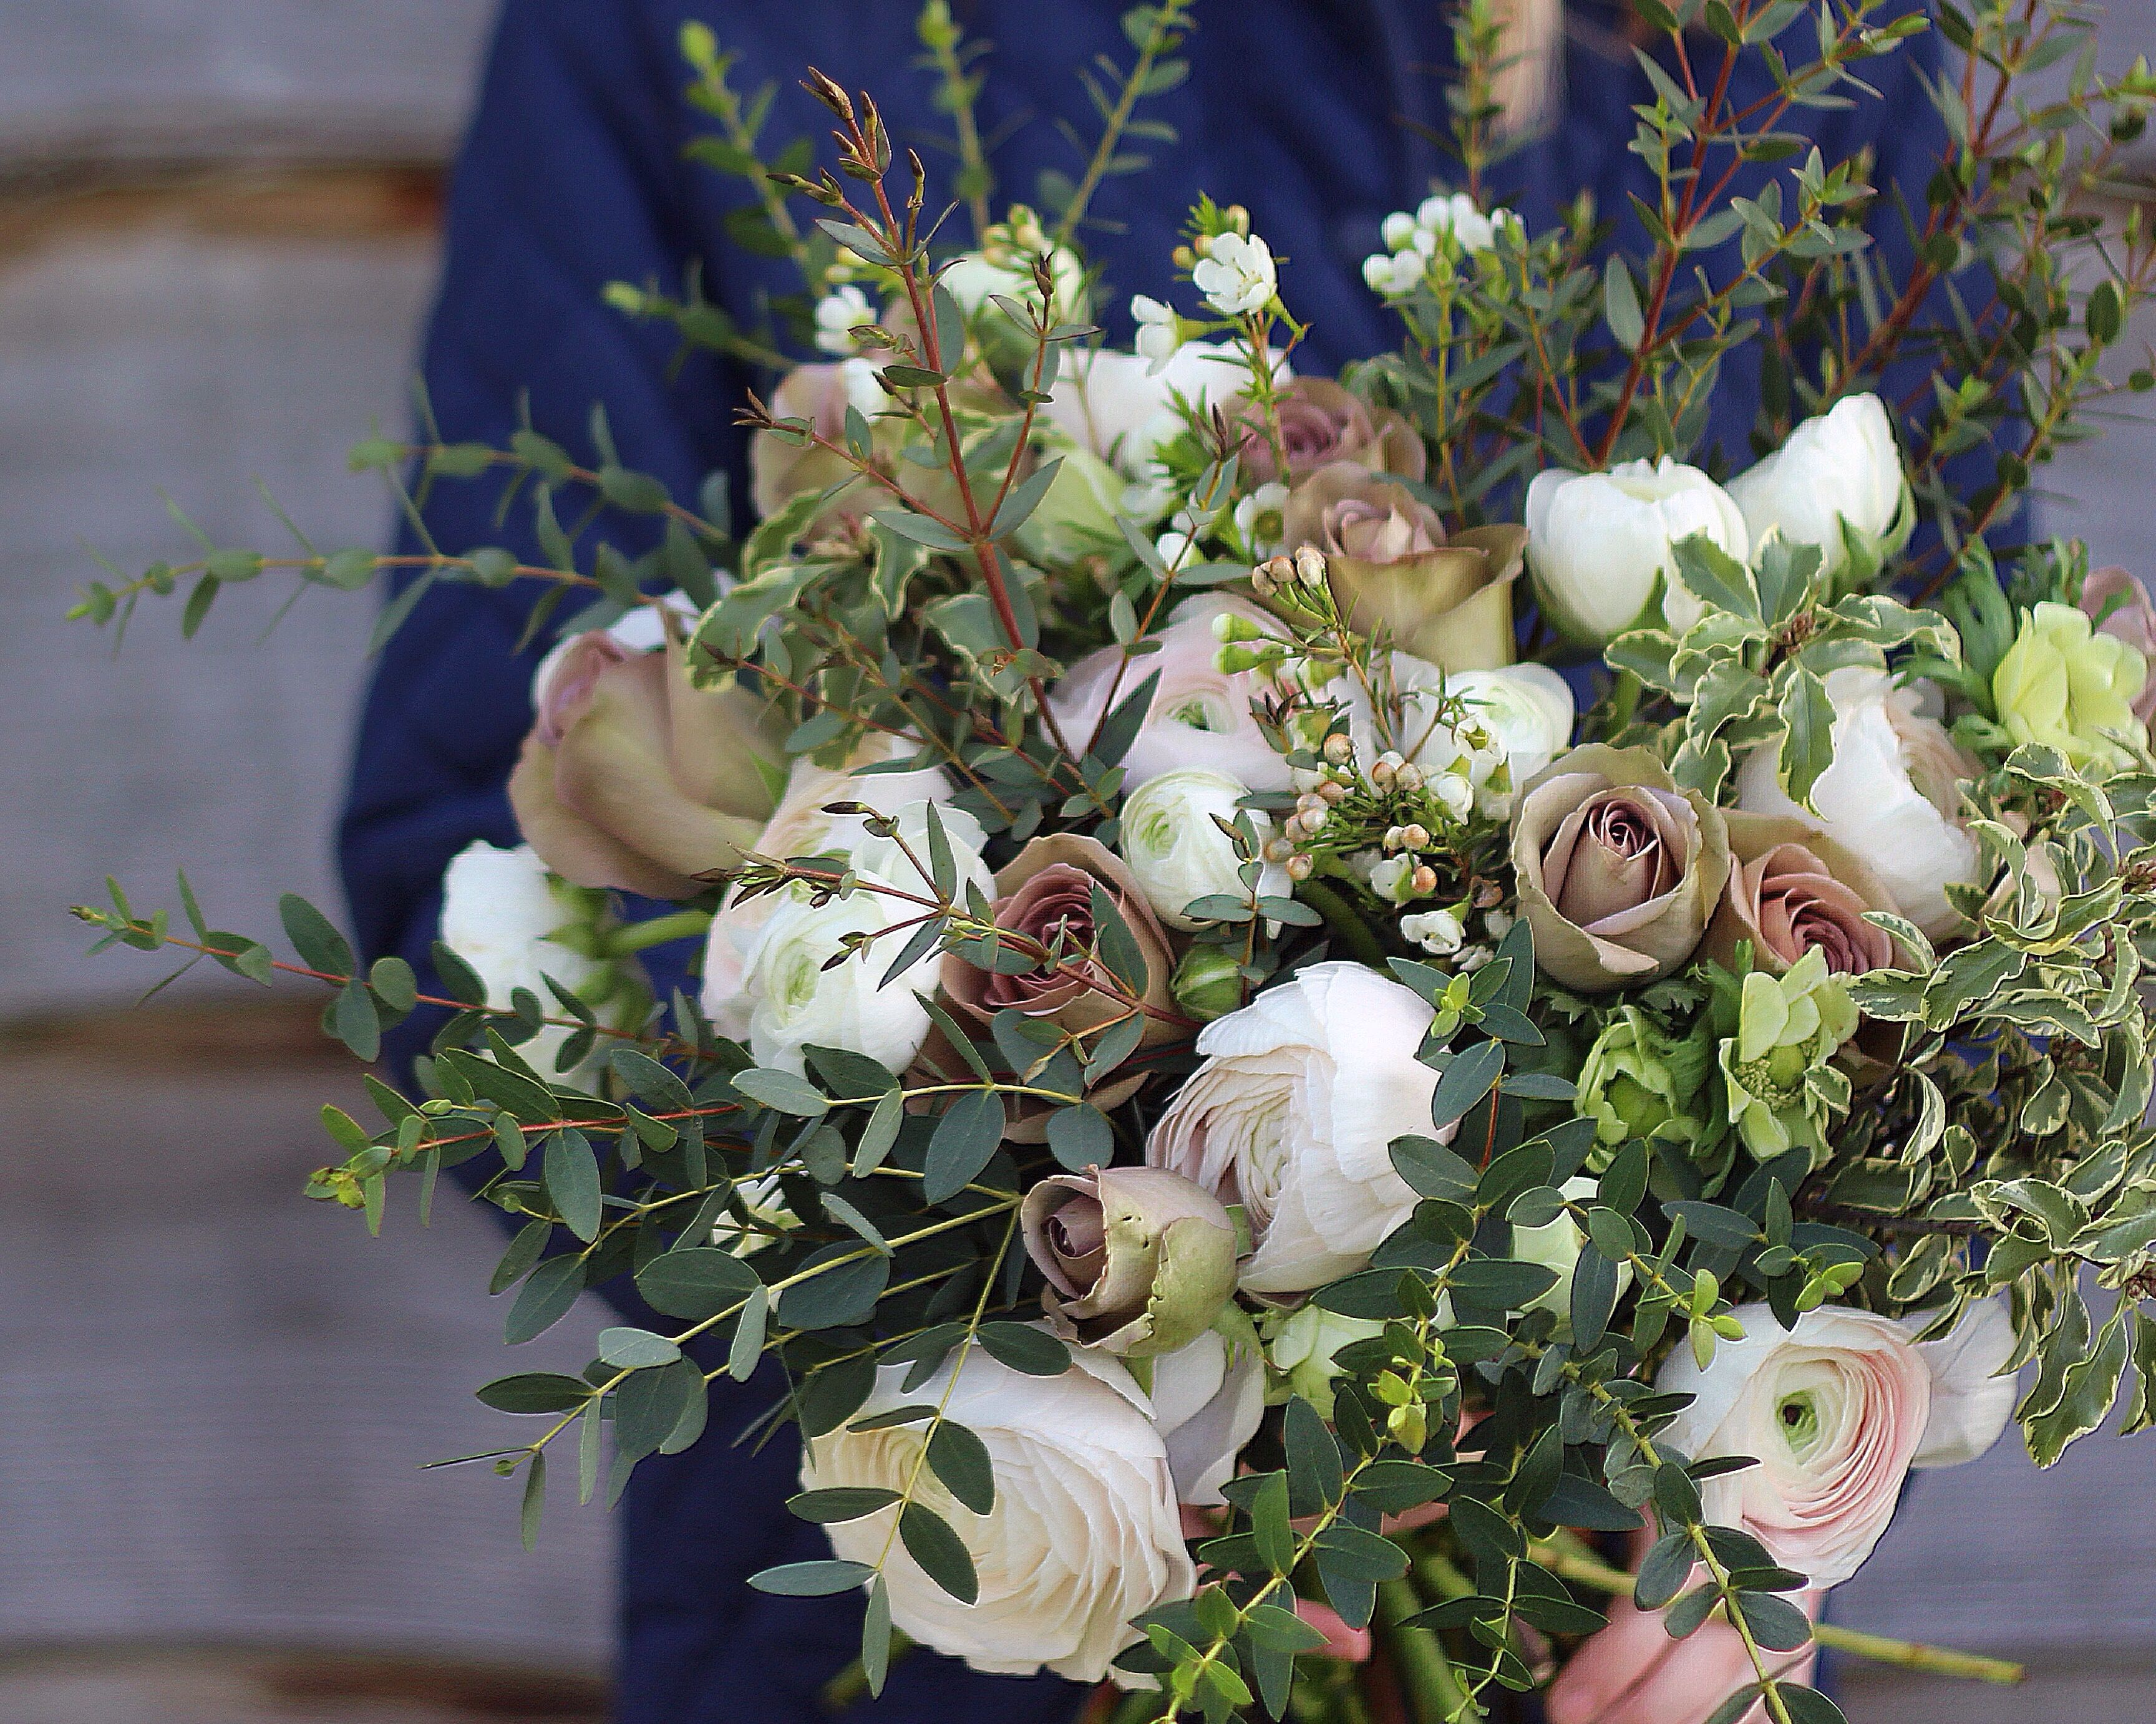 Muted Tones Bouquet With Ranunculus Amnesia Roses Wax Flower And Anemone By Pod Pip Our Signature Rustic Bouqu Rustic Bouquet Fall Wedding Flowers Flowers